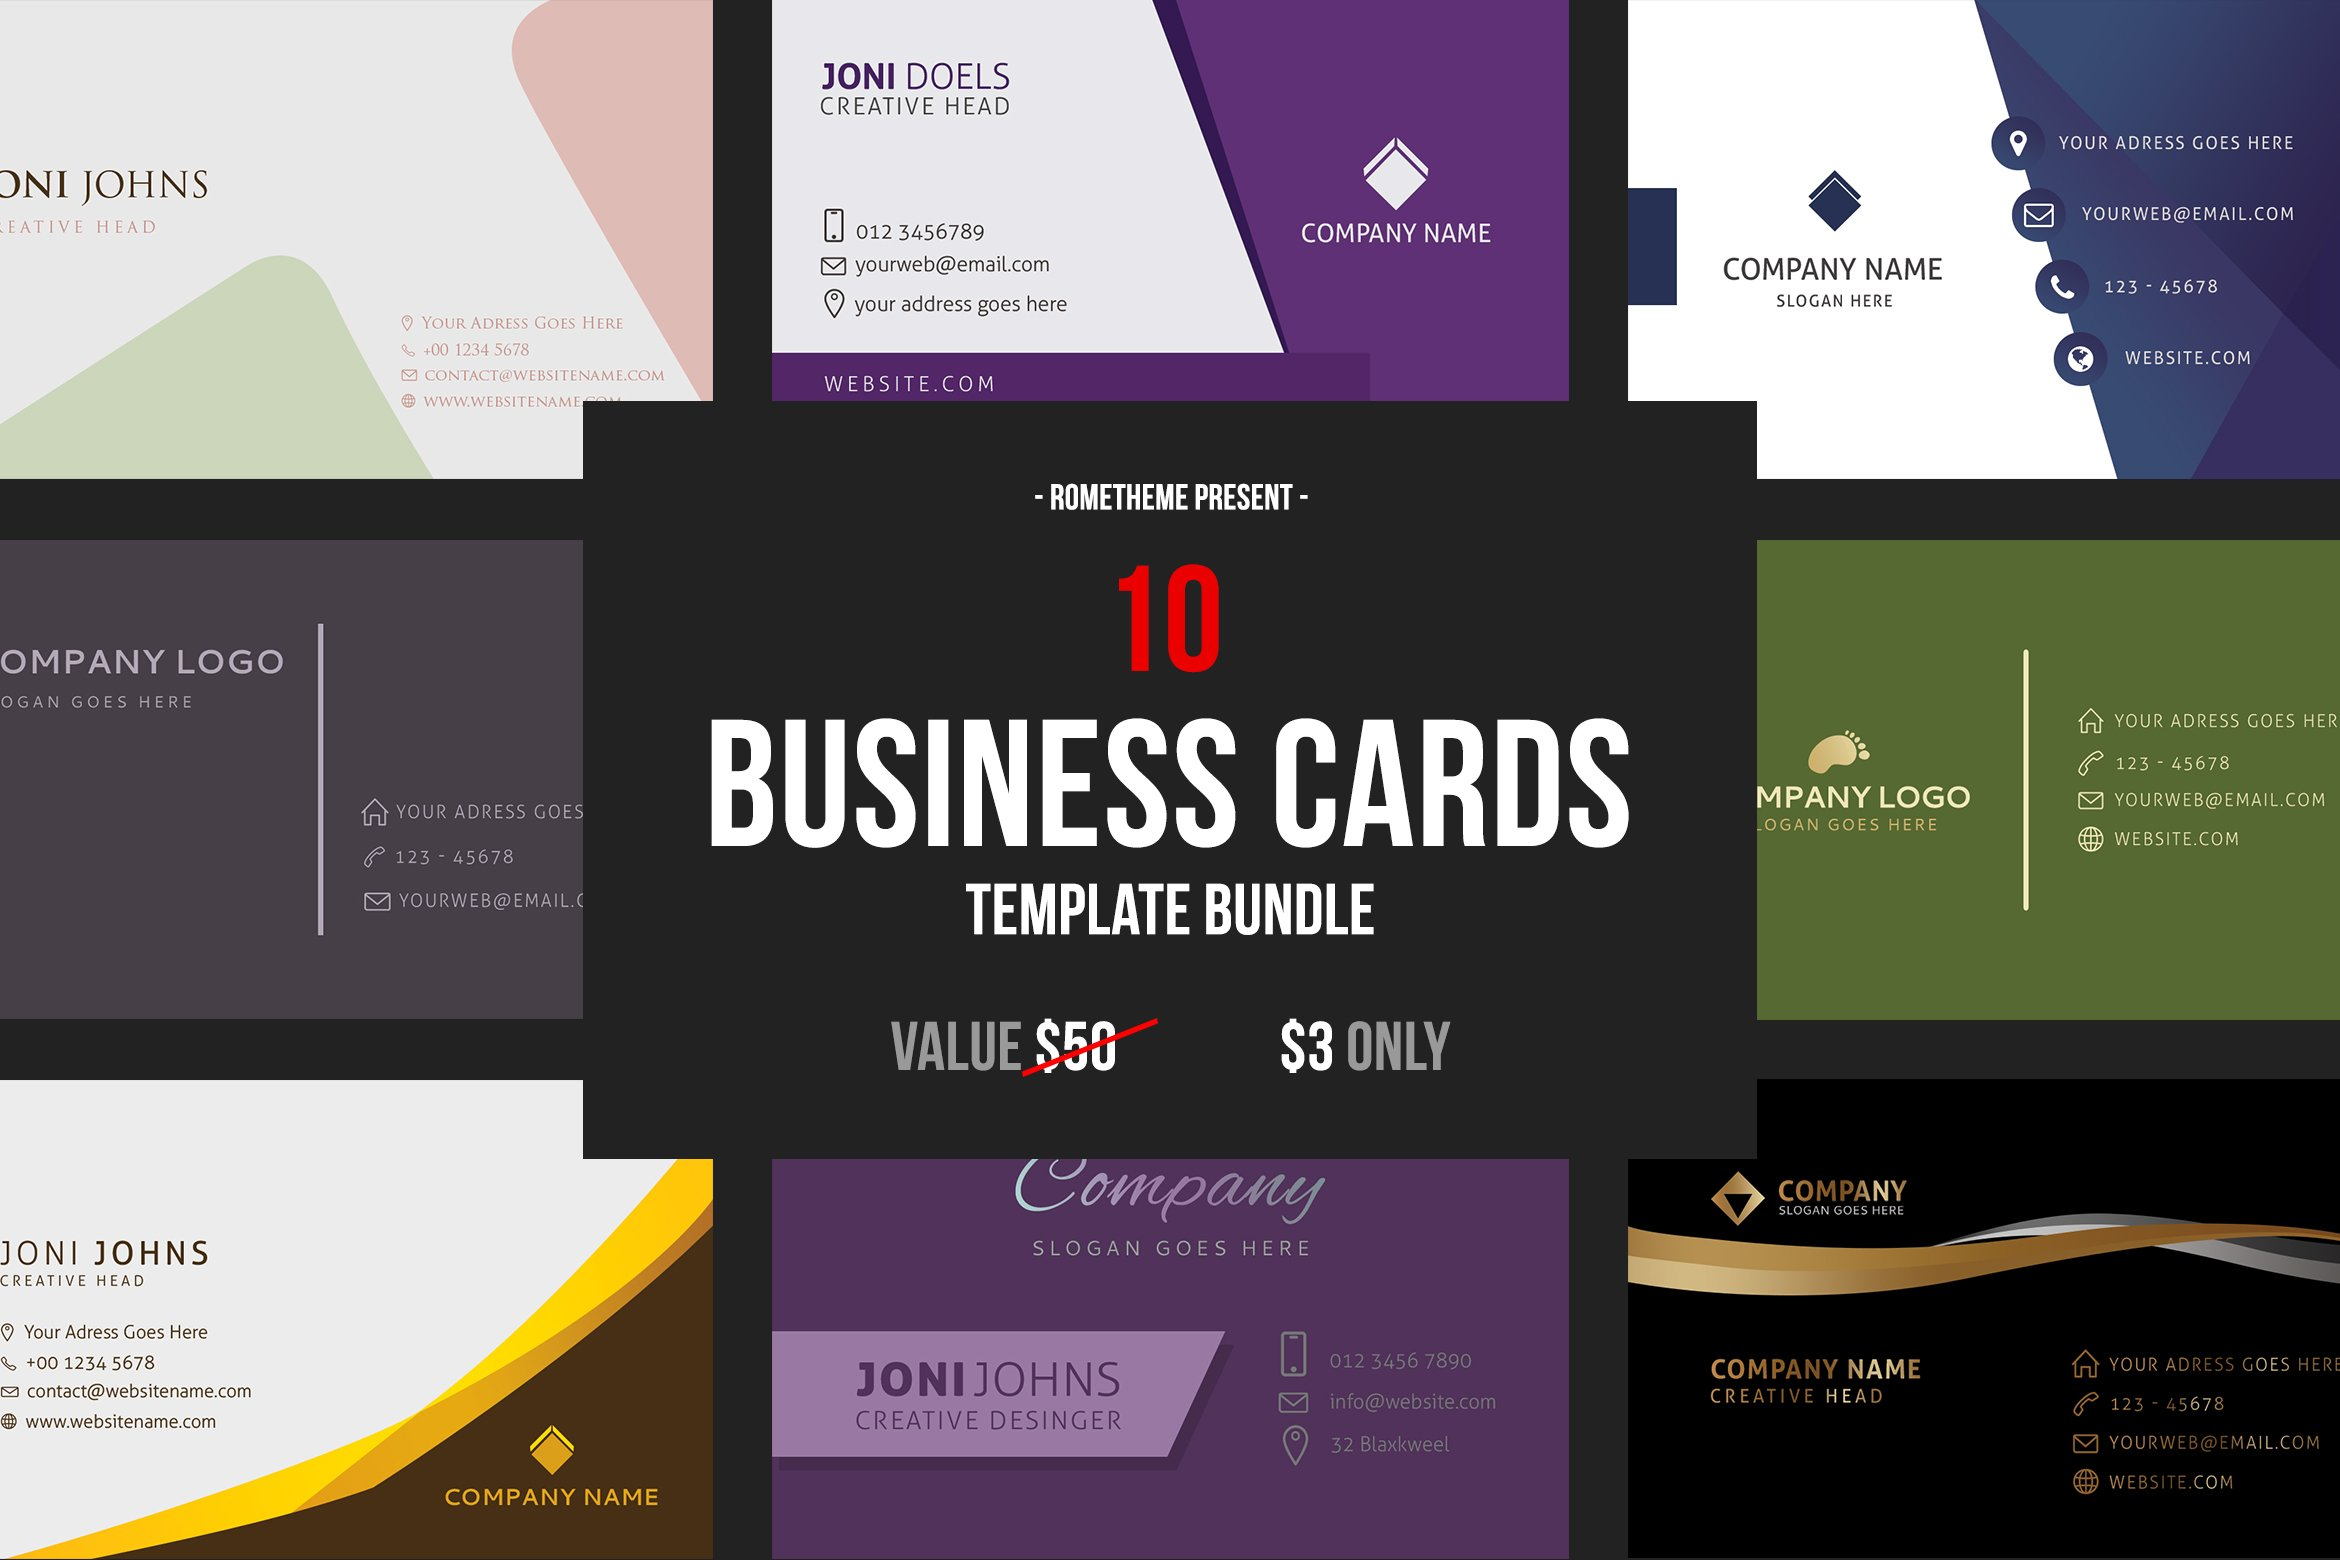 15 Best Photography Business Cards 2019 - bundle